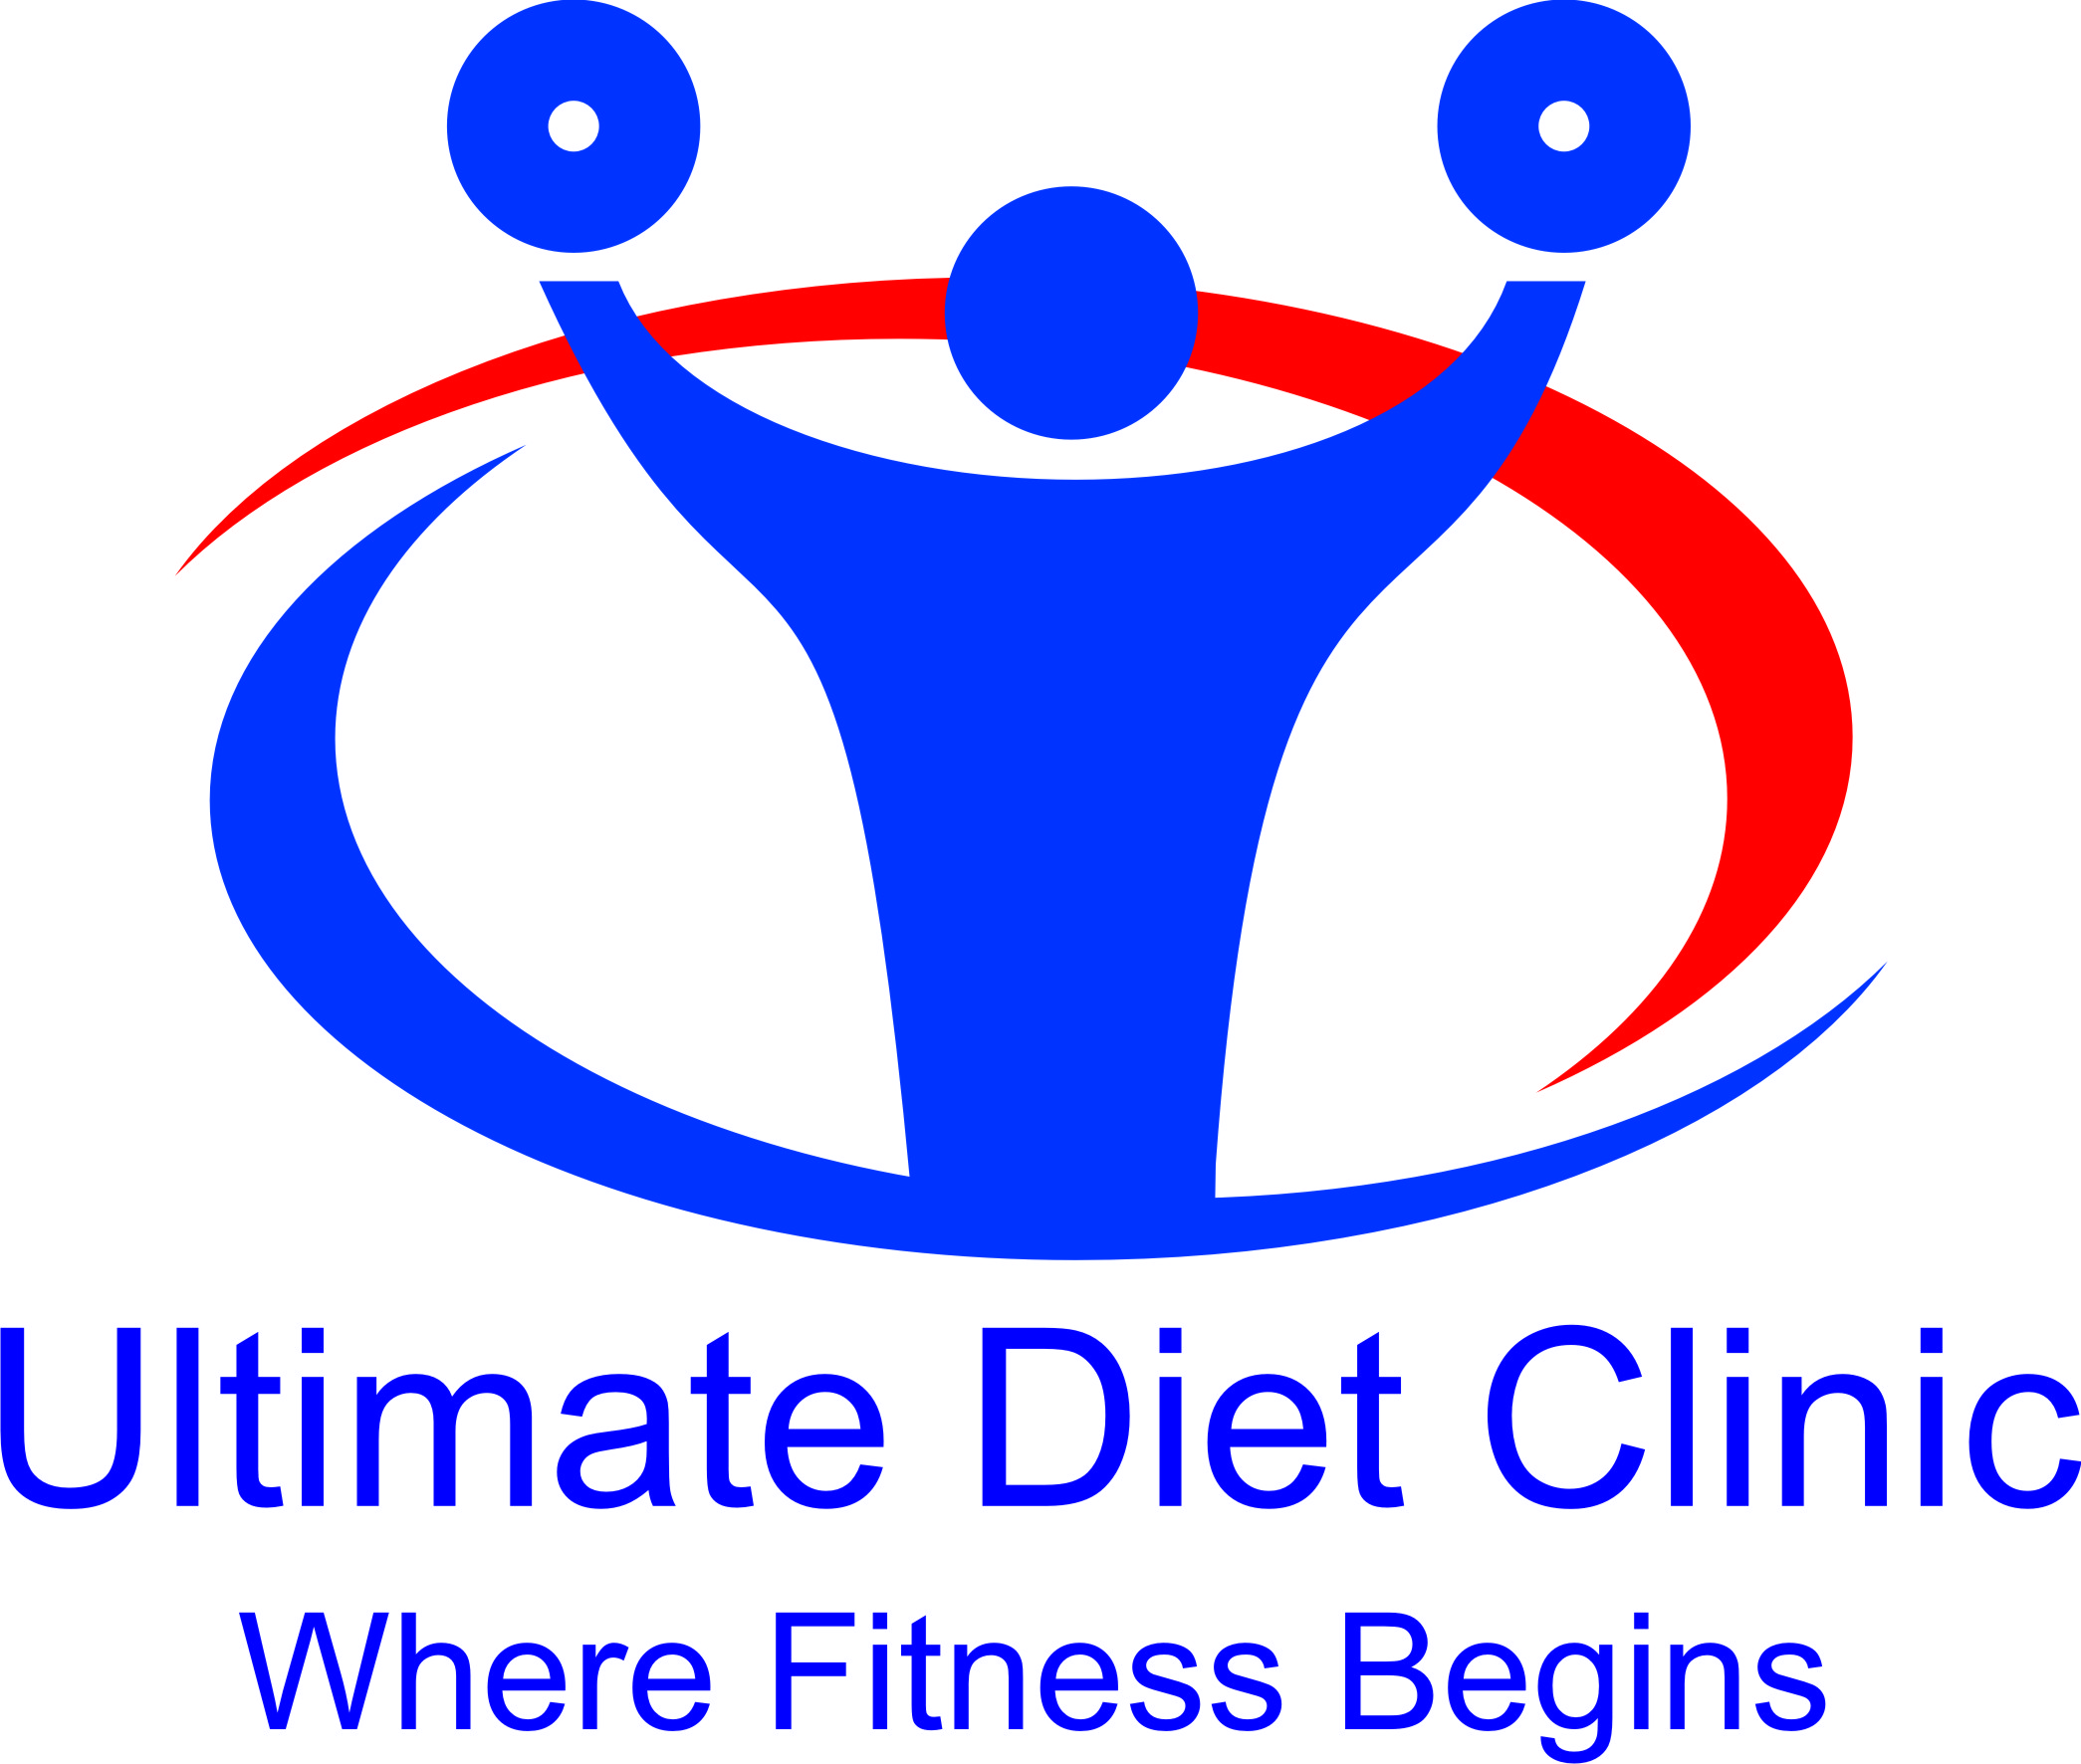 Ultimate Diet Clinic